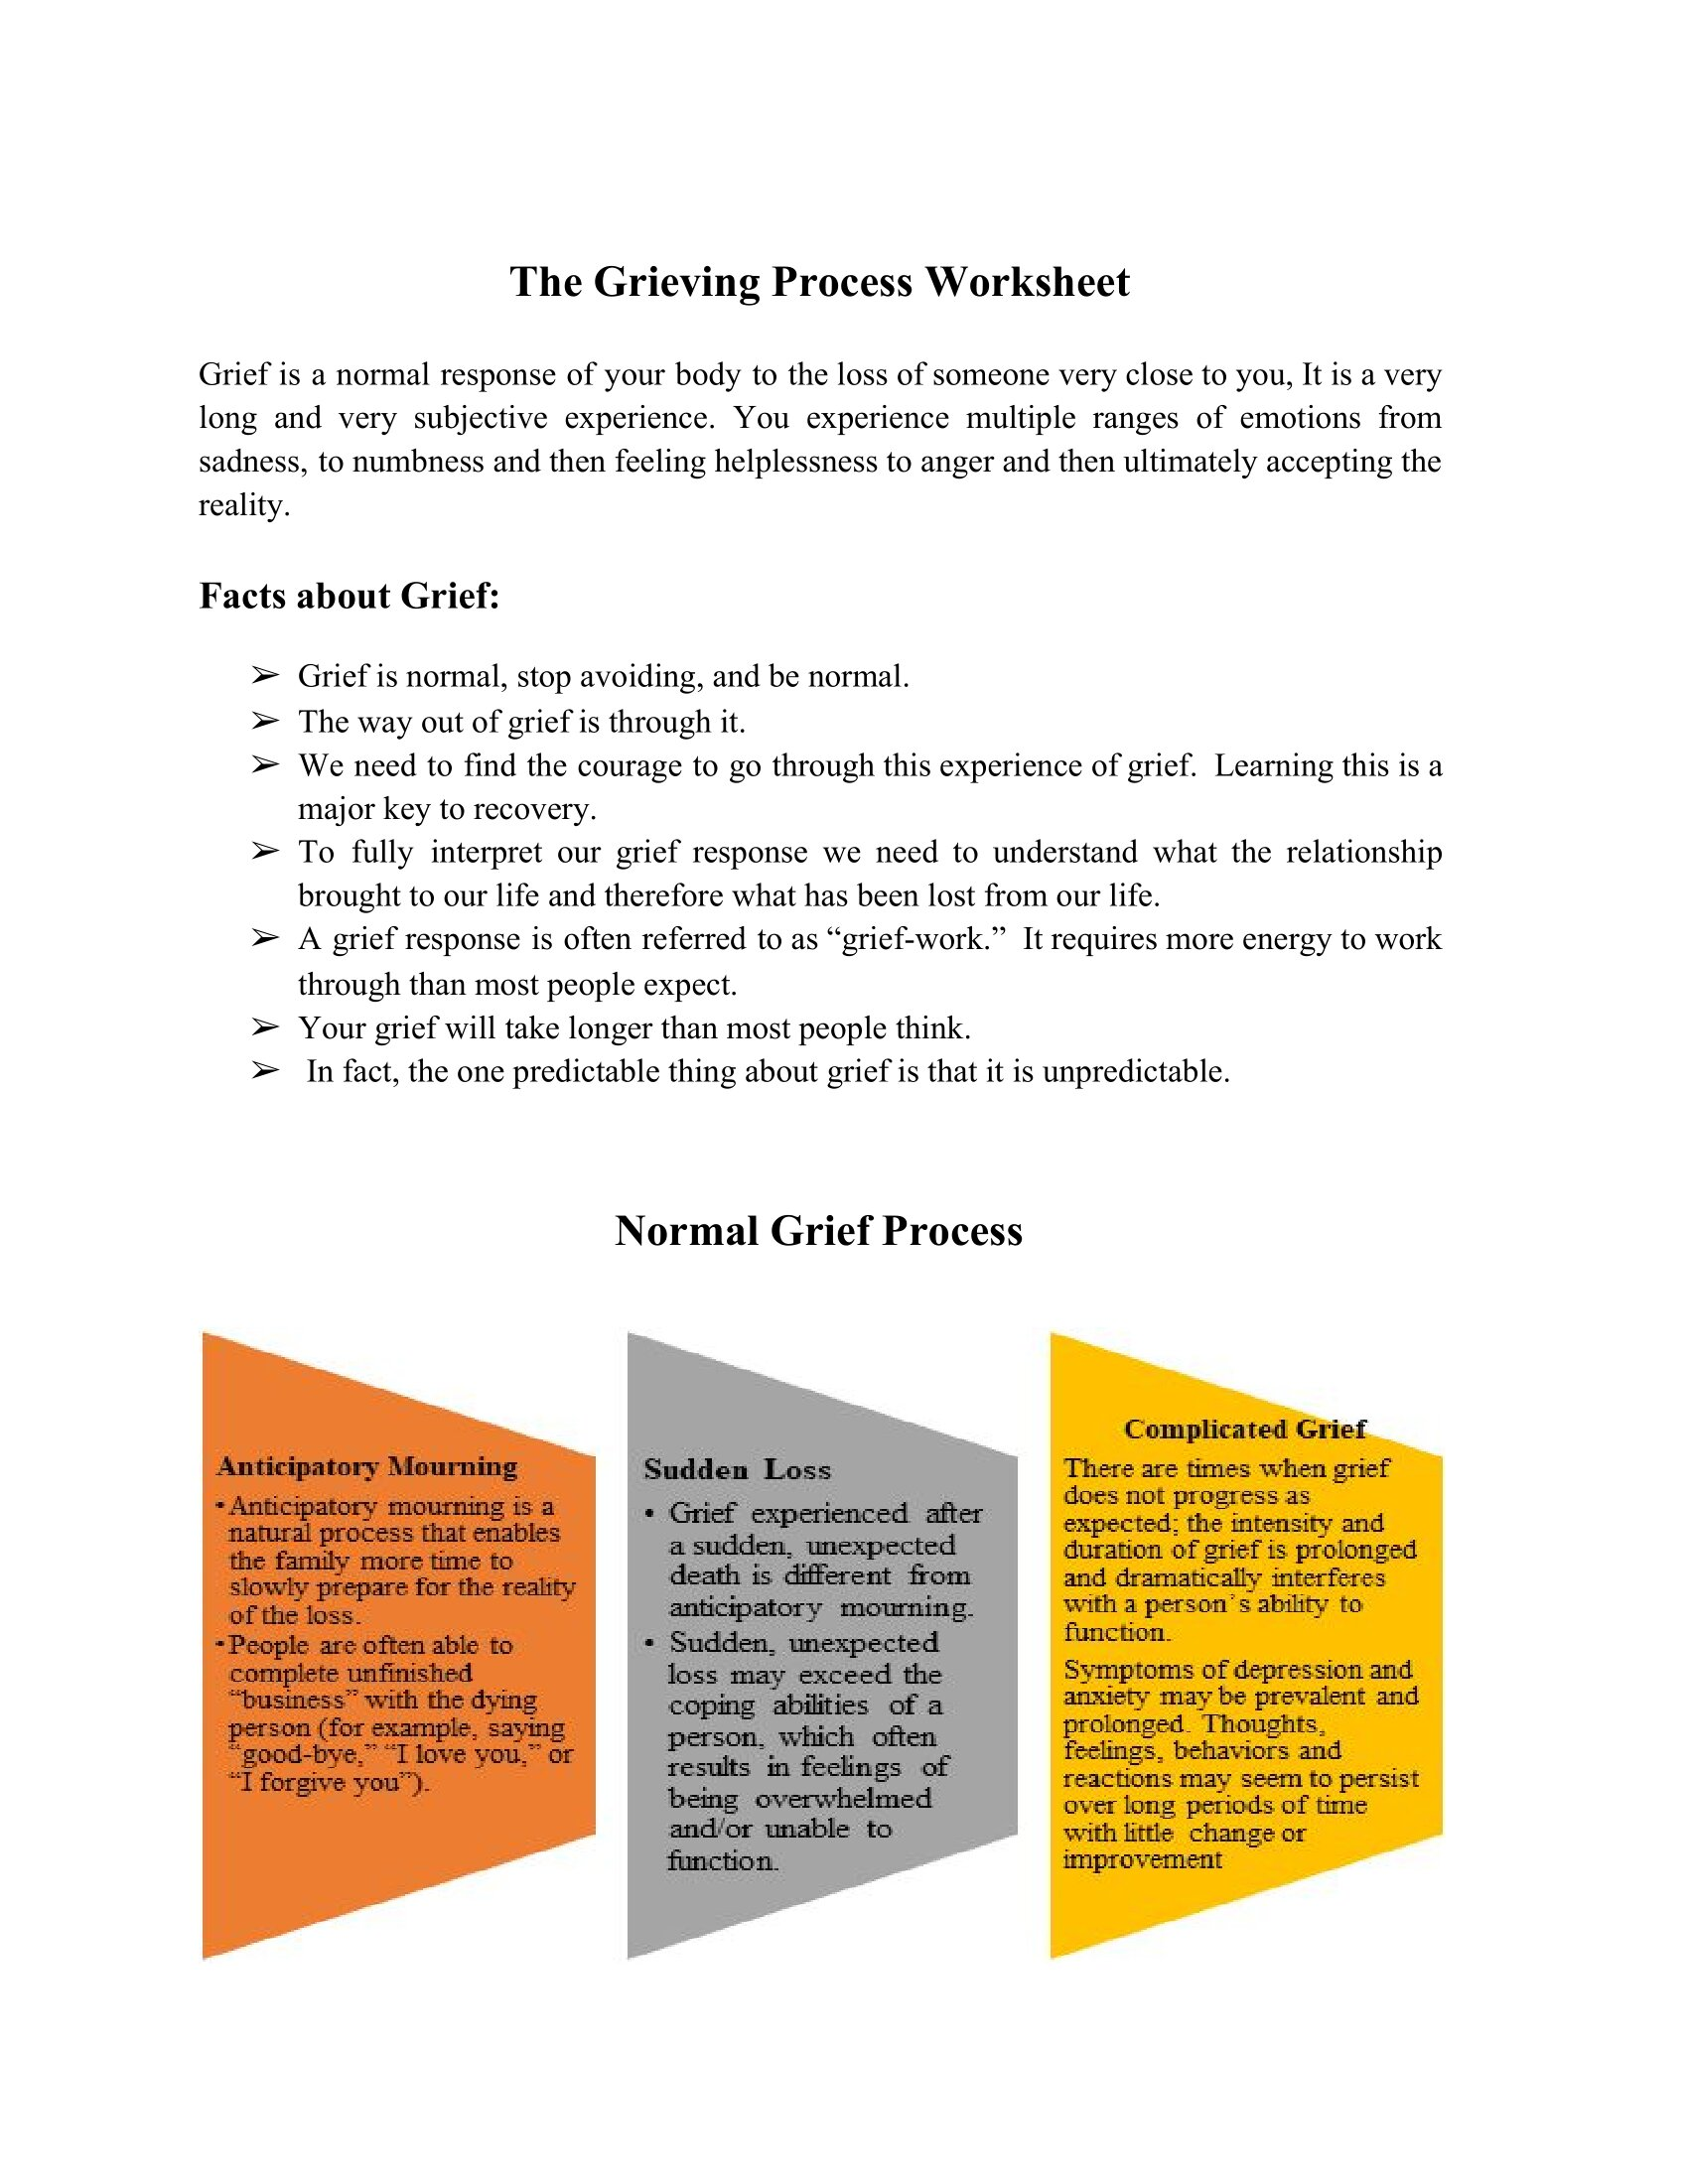 The Grieving Process Worksheet